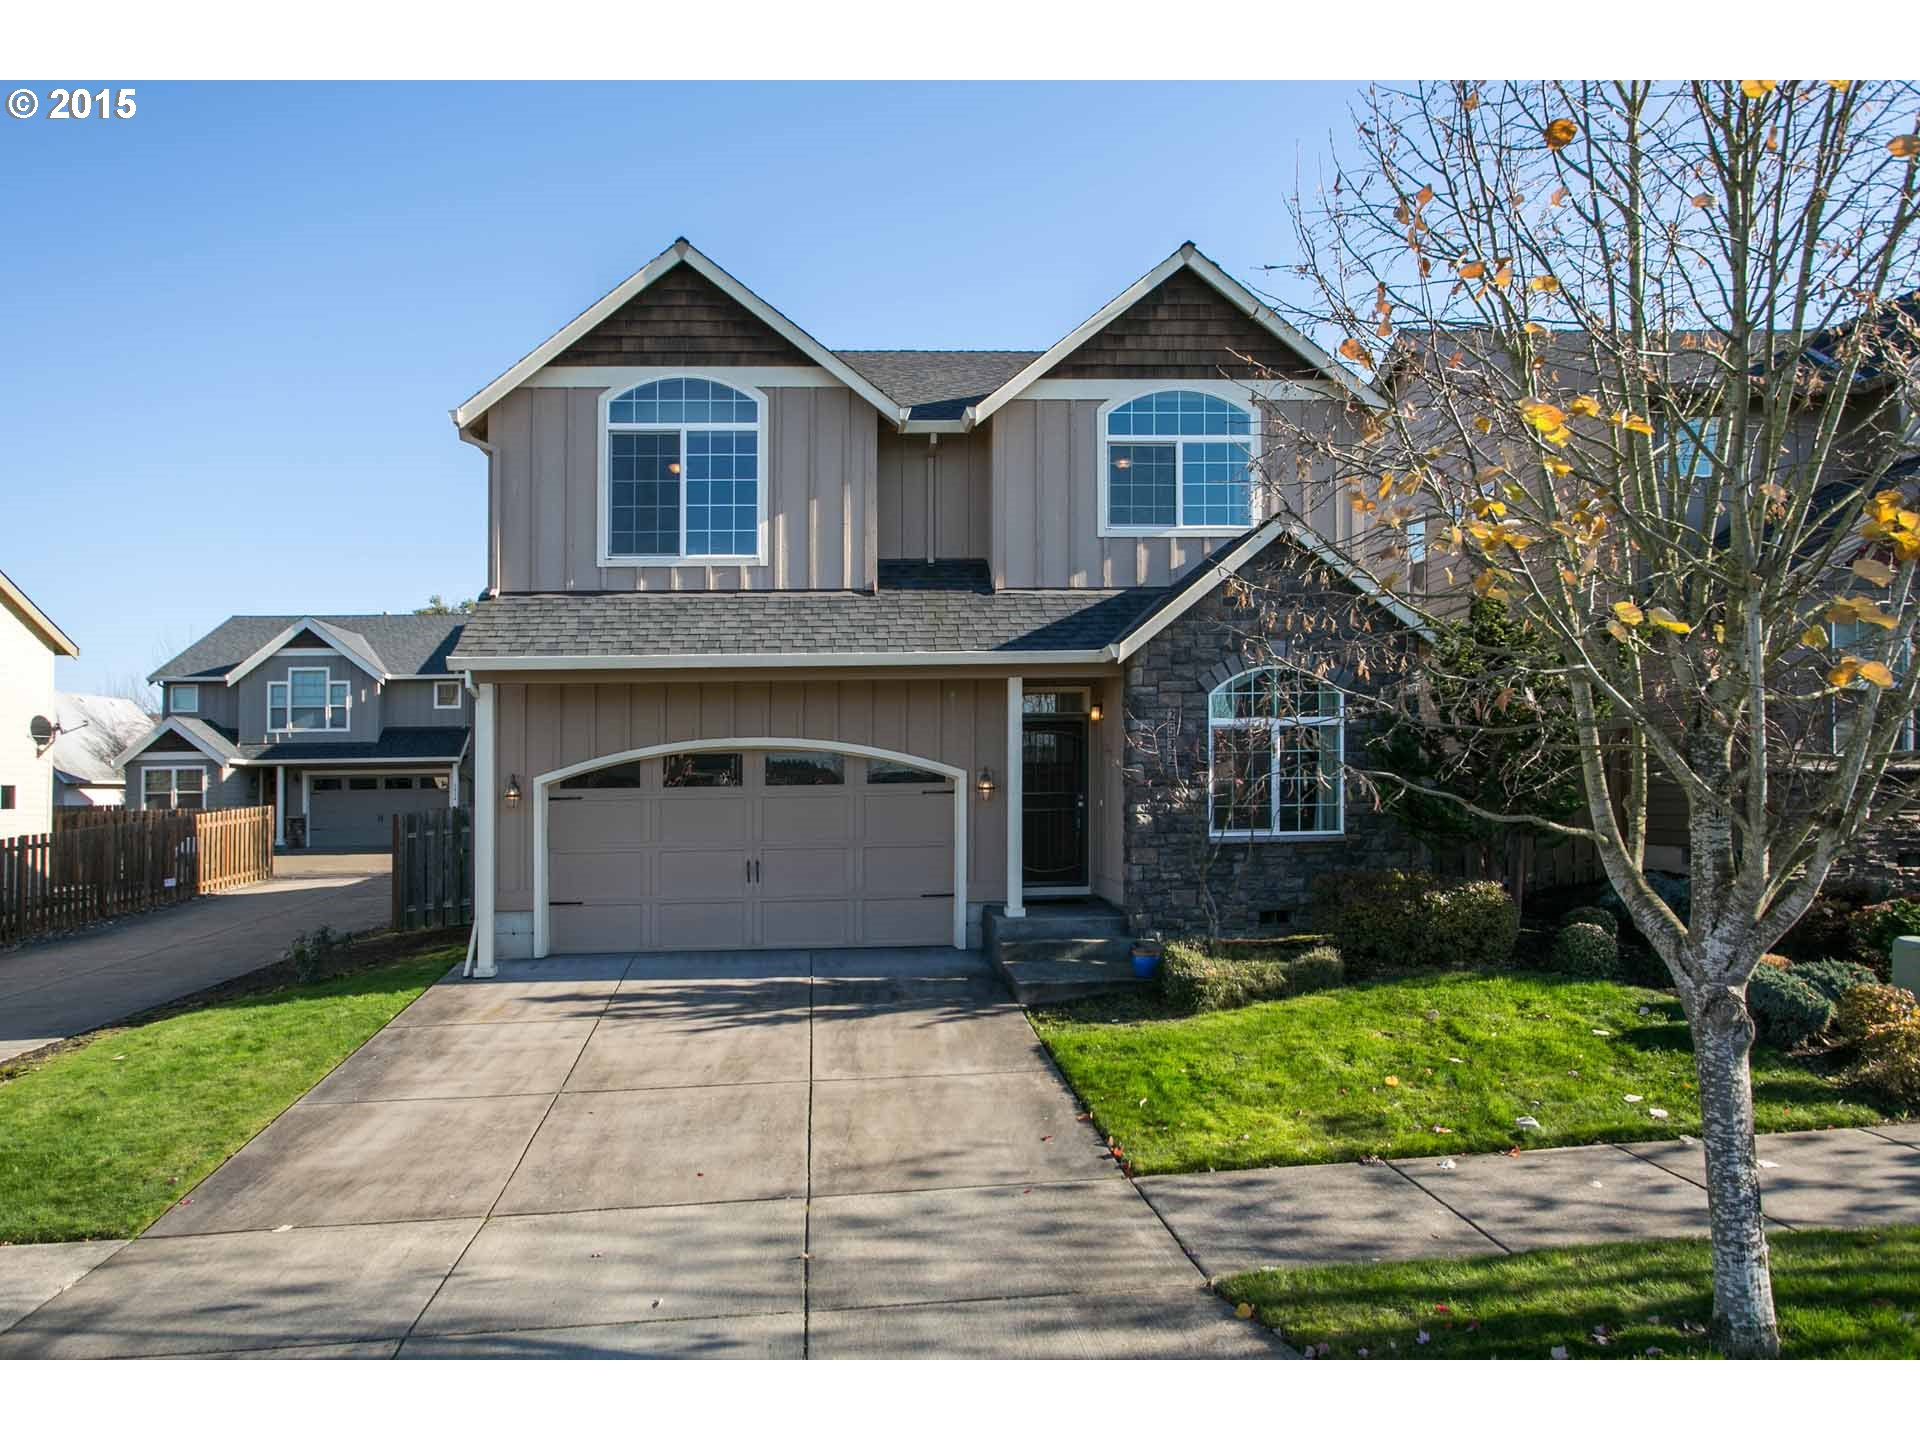 2532 Crater Ln, Newberg, OR